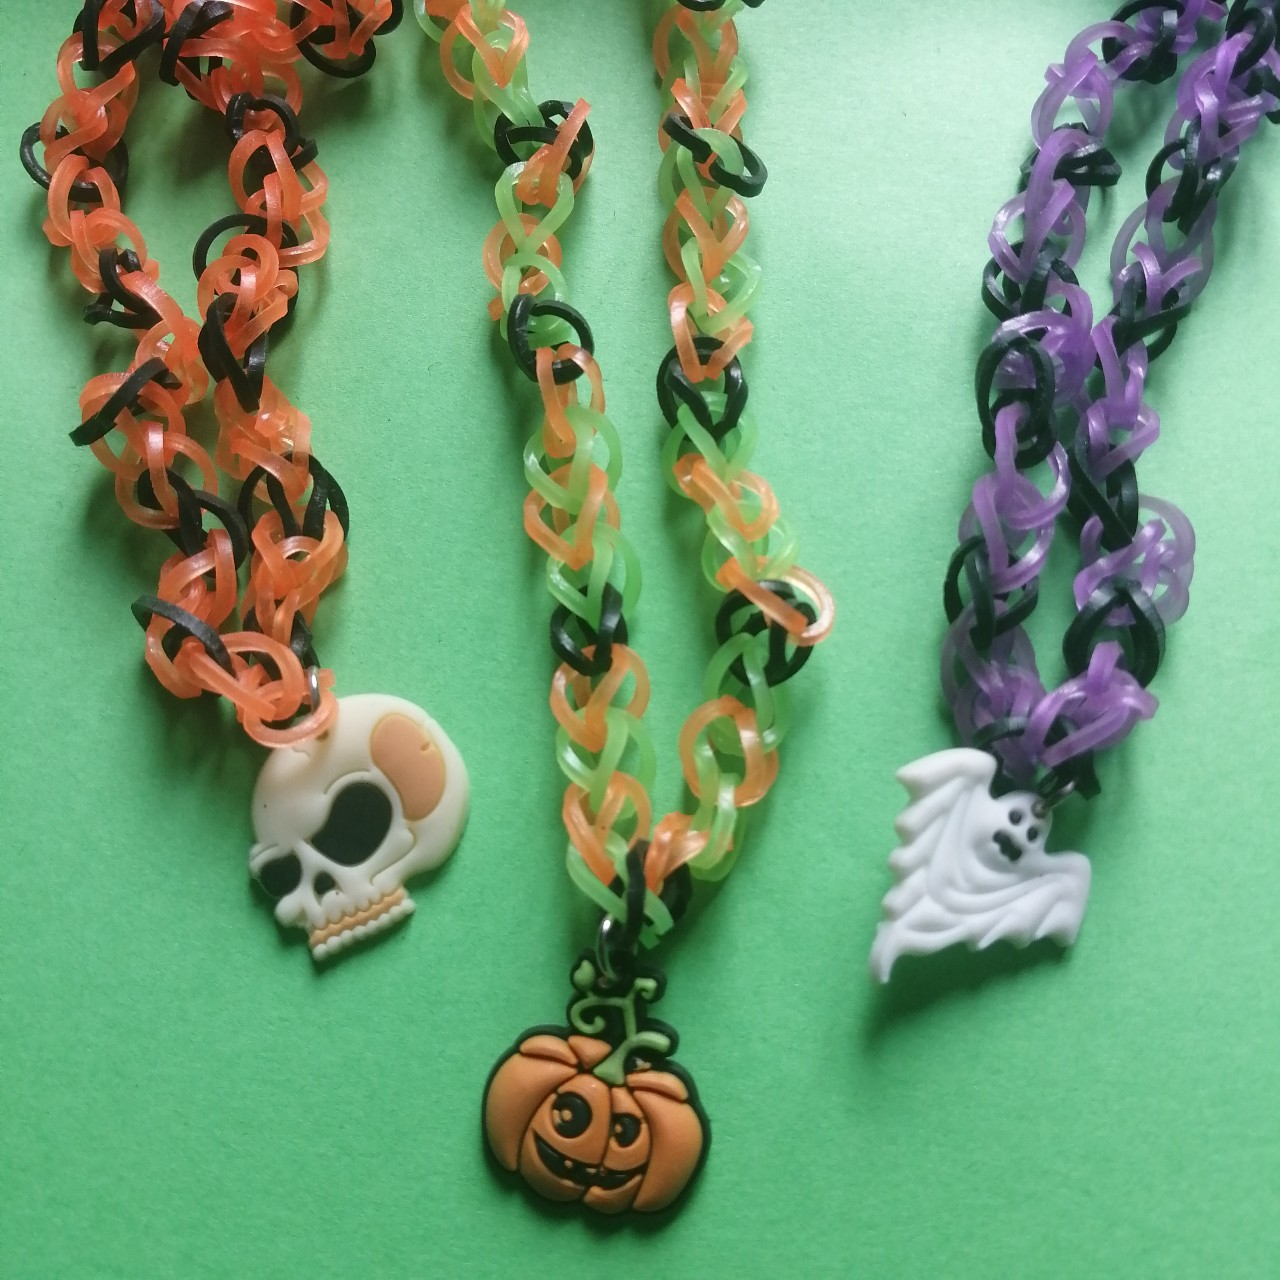 Product Image 1 - IT'S SPOOKY SEASON! 3 hand made